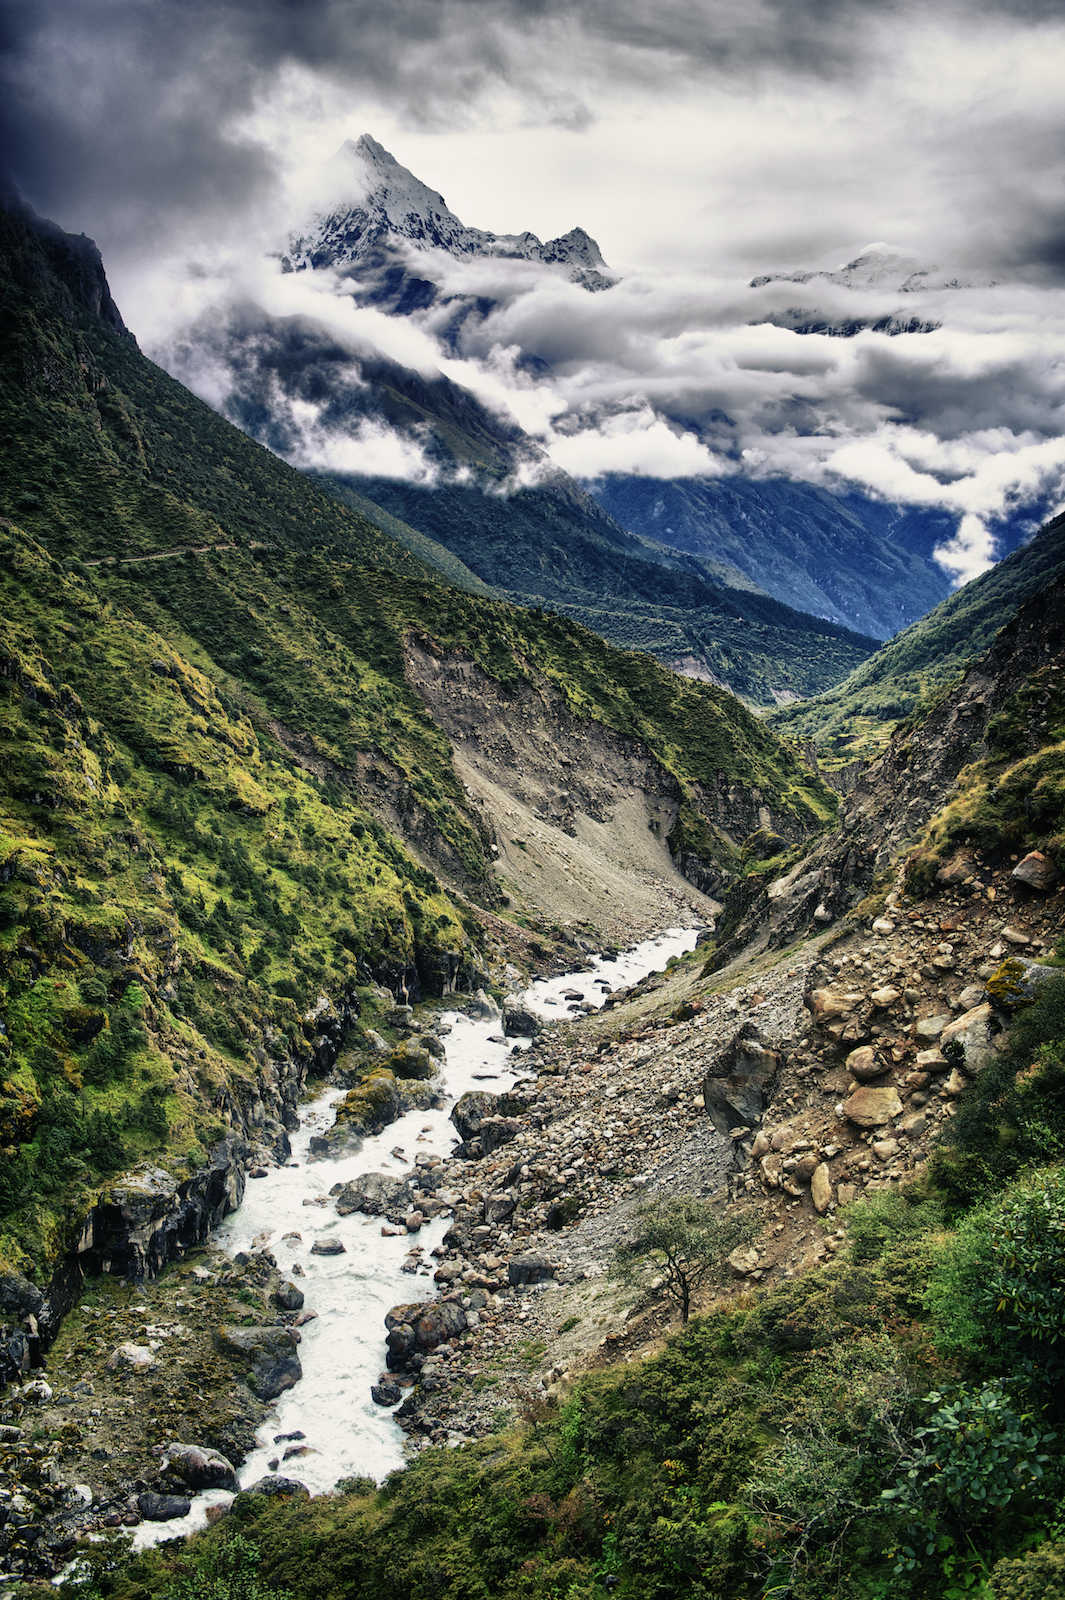 The Bhote Khosi River in the Nepal Himalayas. Image by New Orleans based travel photographer, Marc Pagani - marcpagani.com